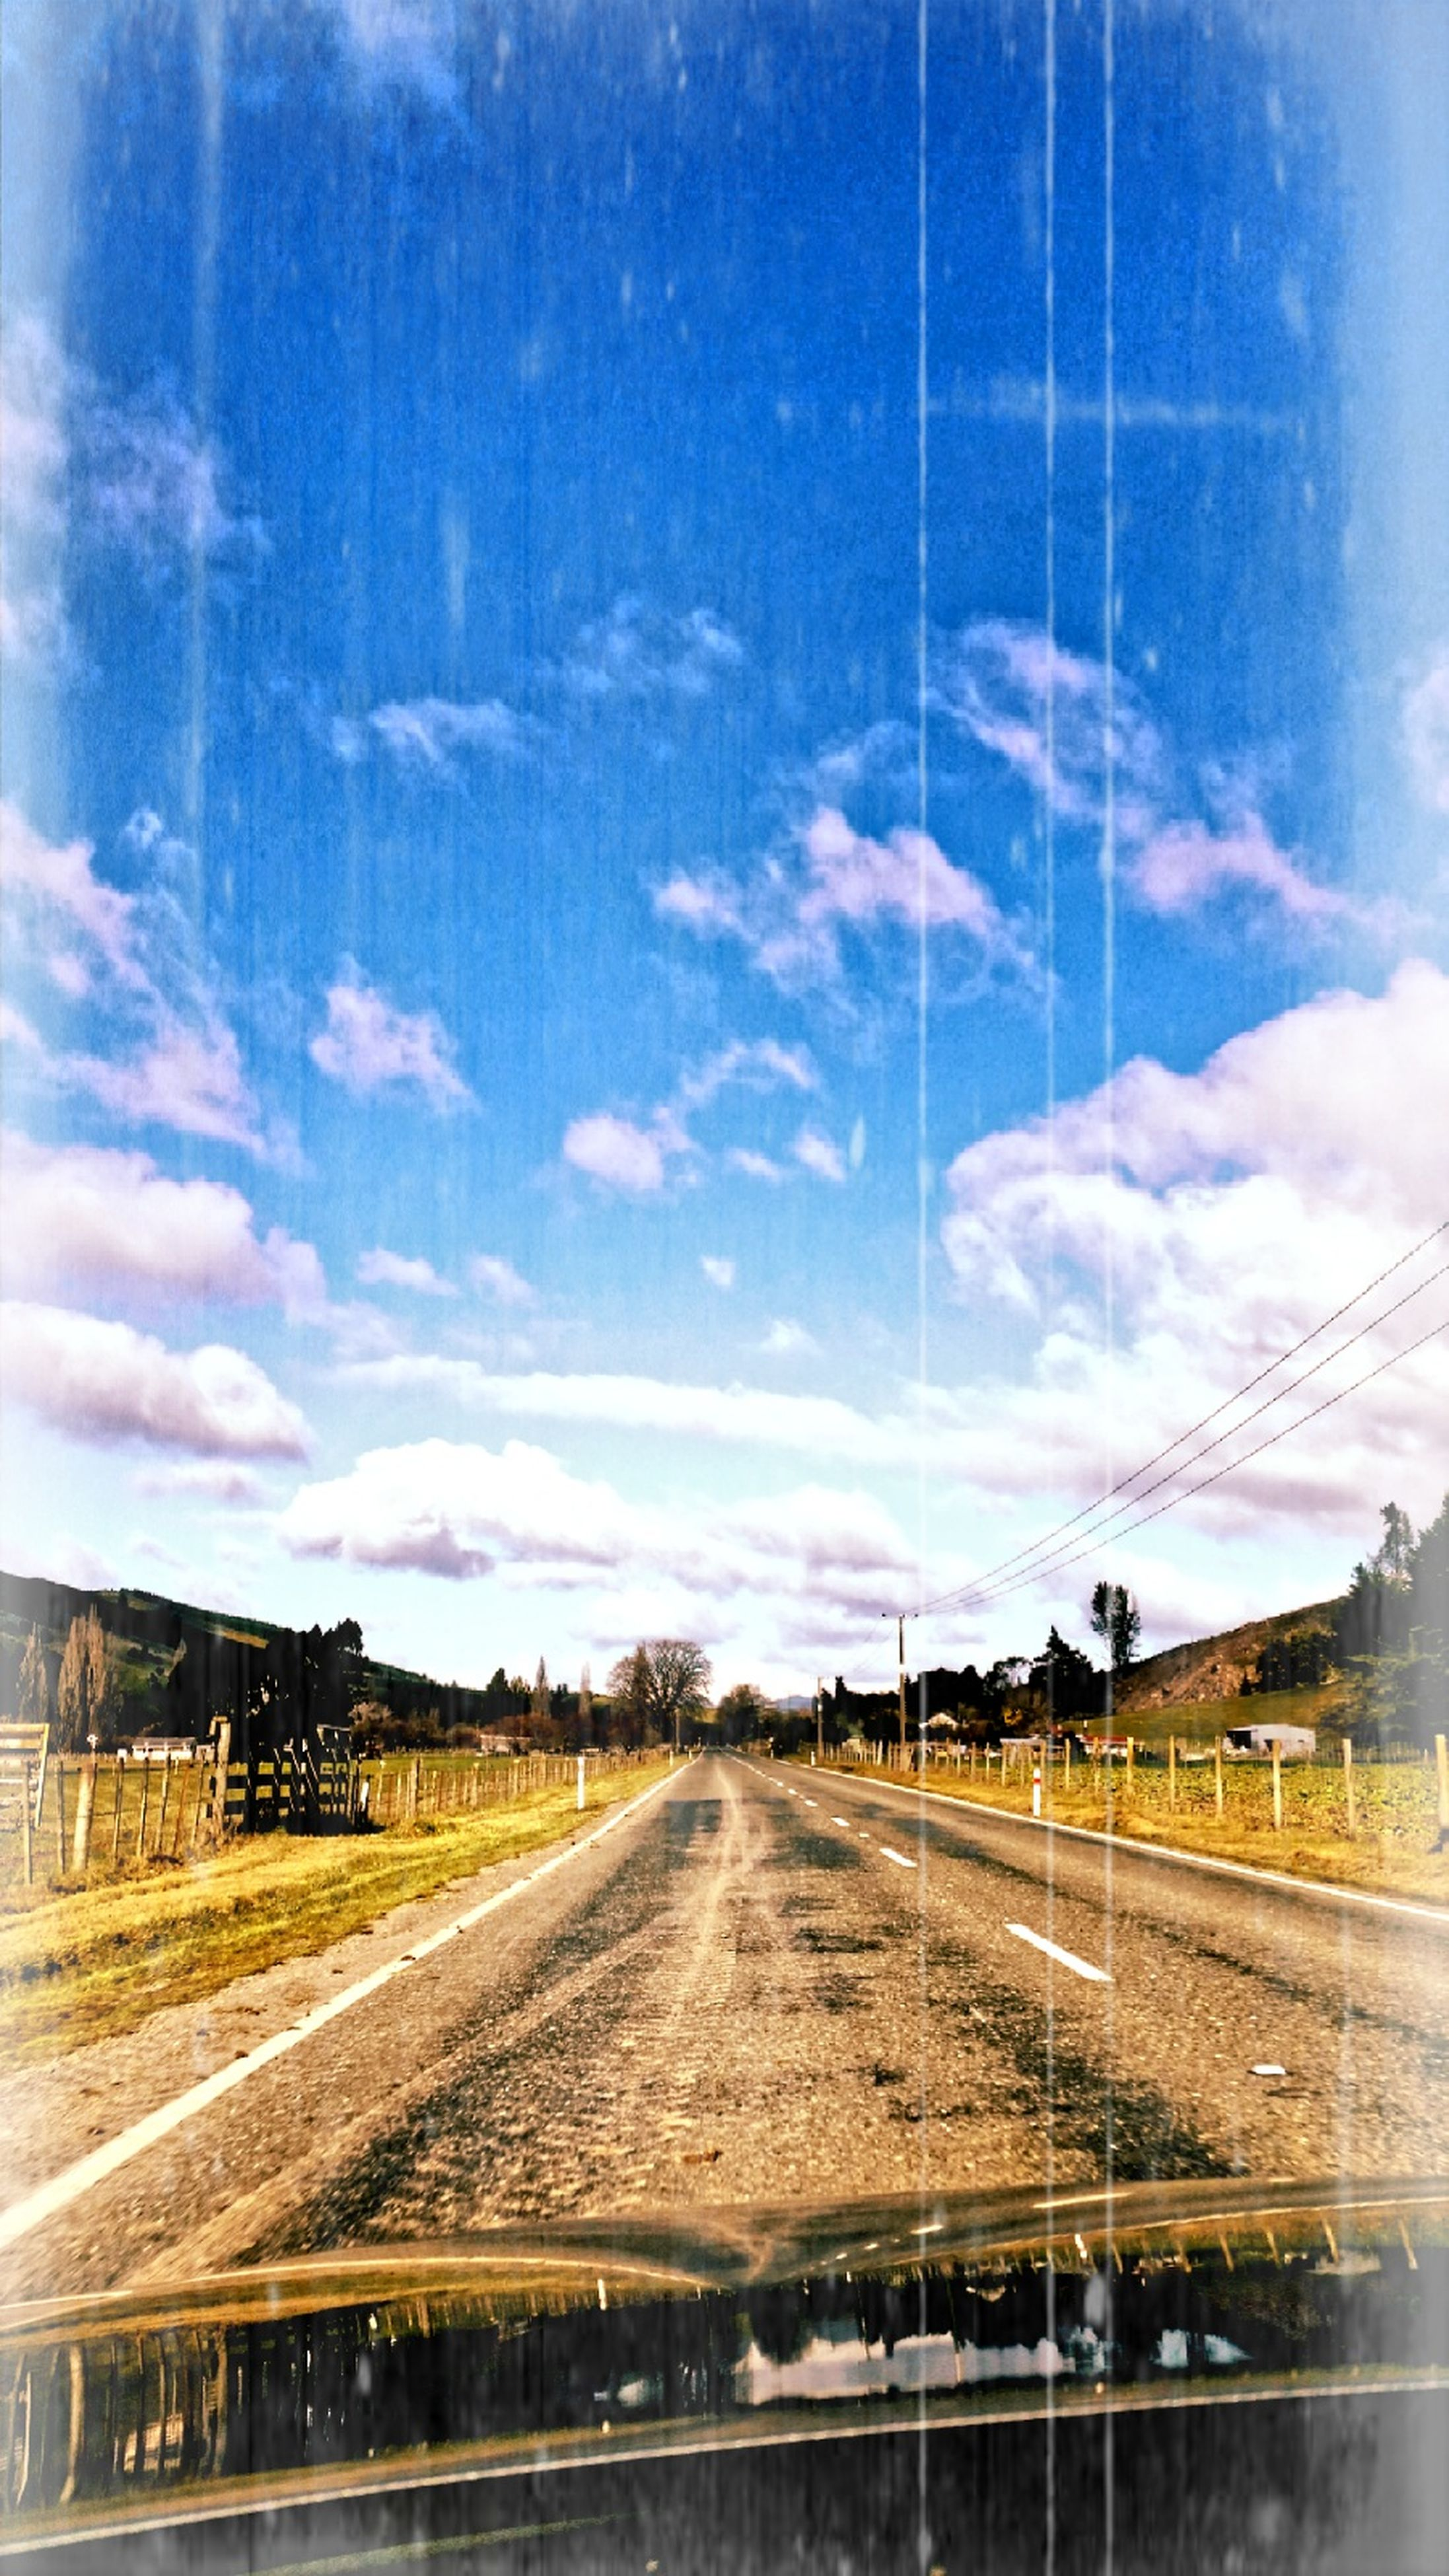 sky, railroad track, cloud - sky, the way forward, diminishing perspective, cloud, cloudy, vanishing point, no people, outdoors, nature, day, railway track, blue, weather, landscape